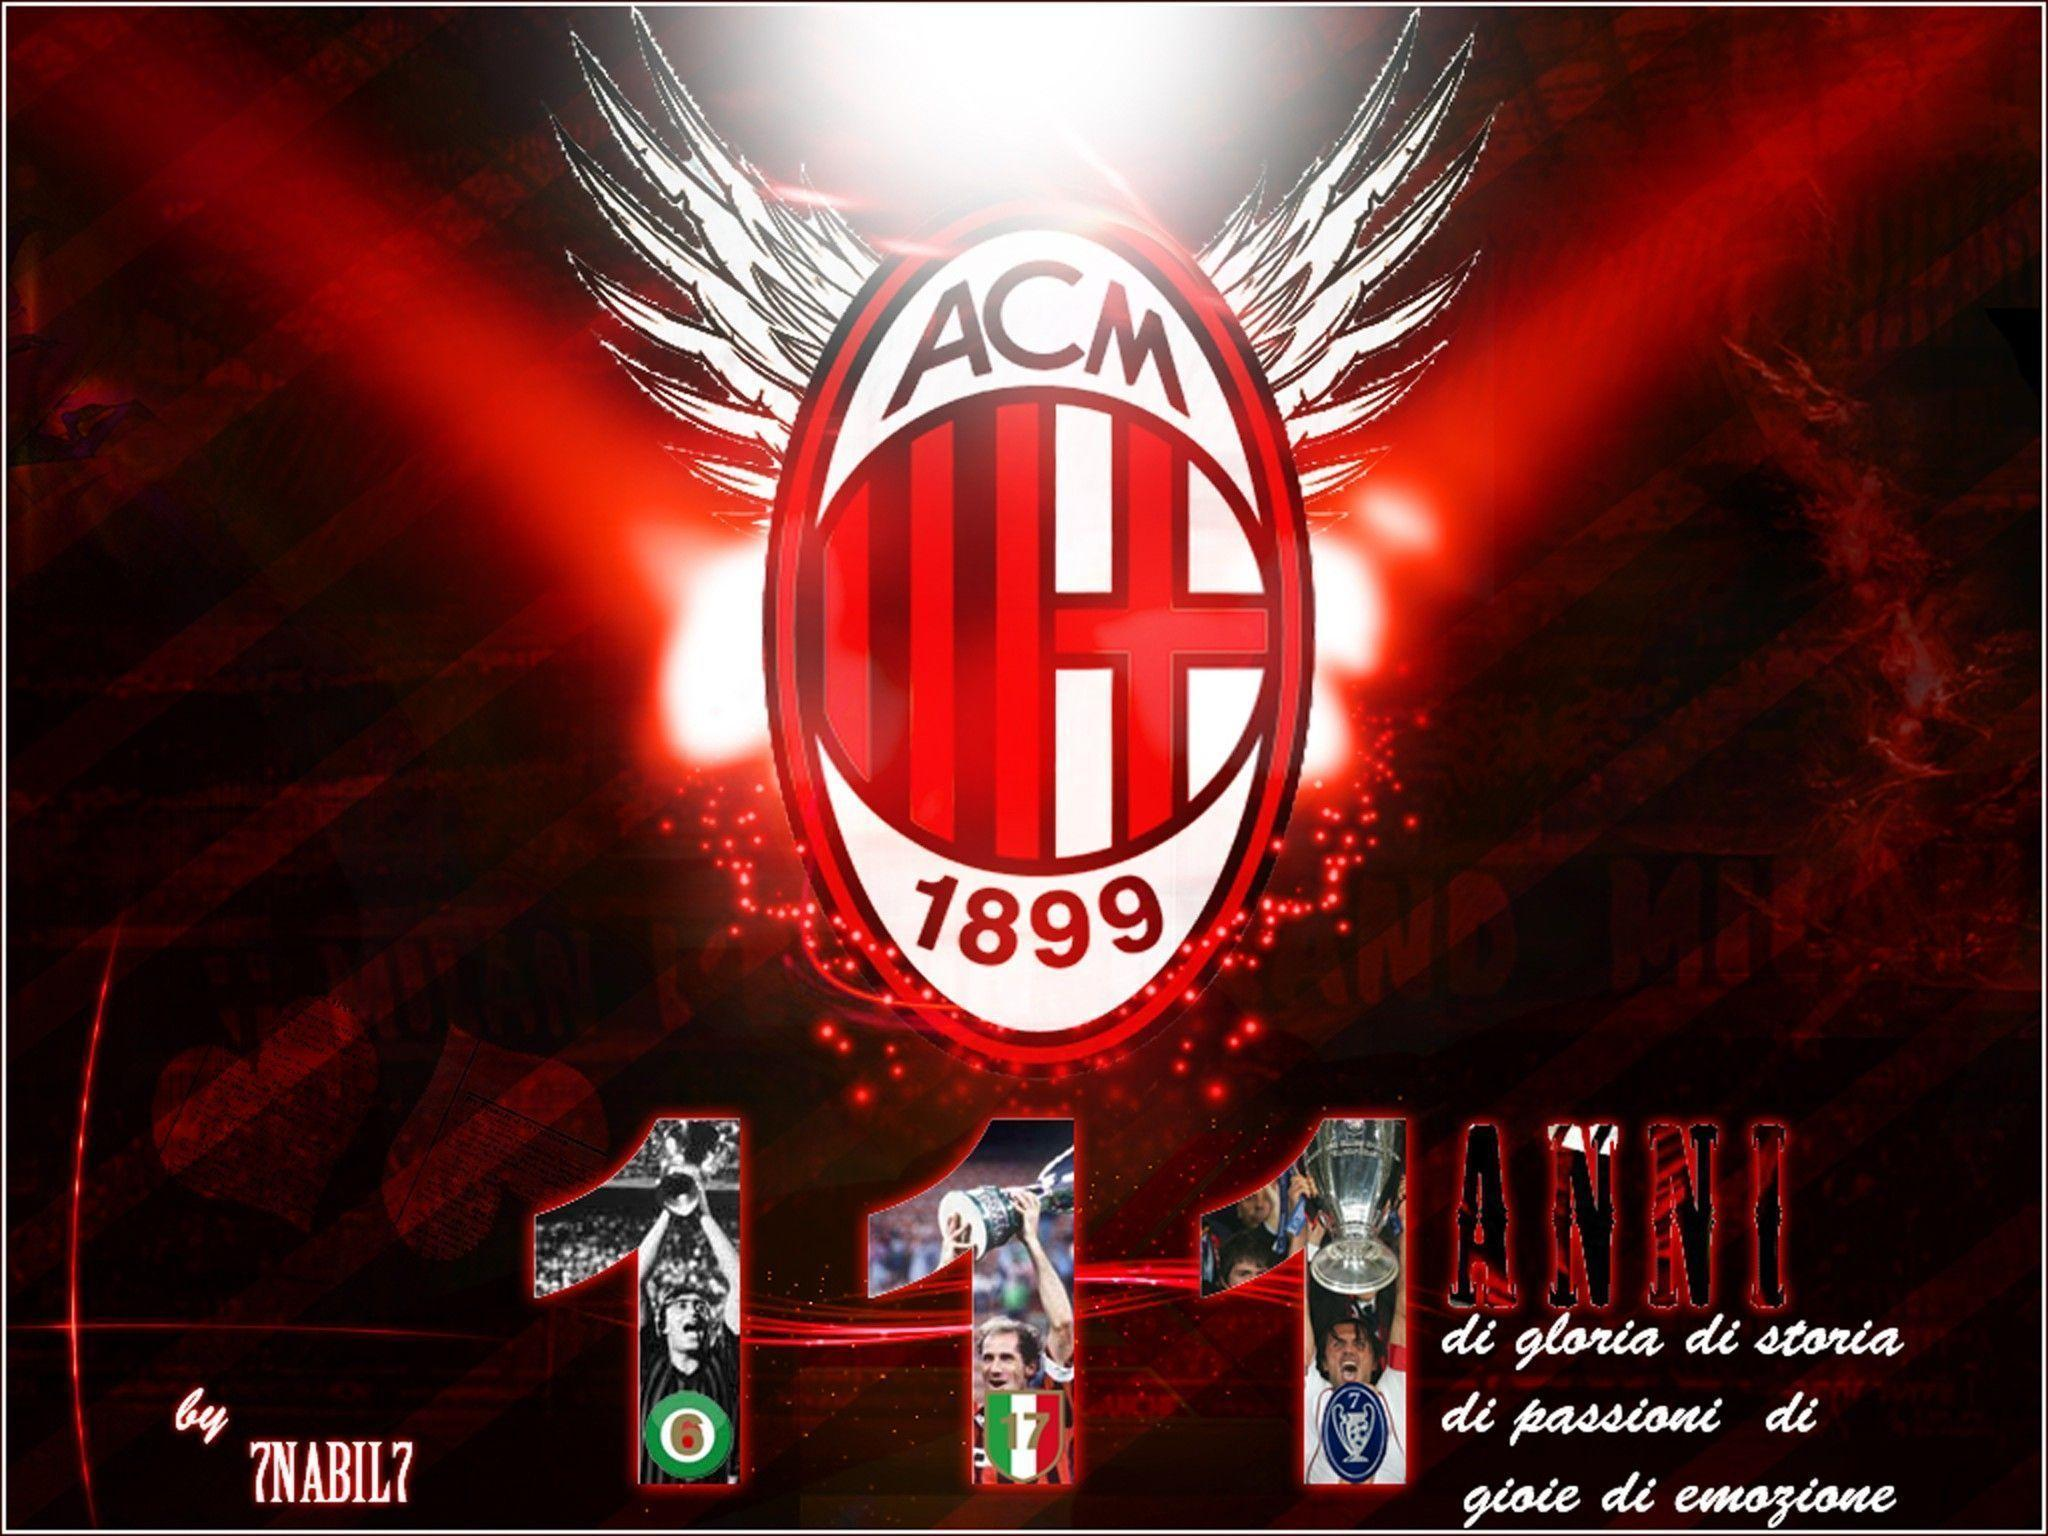 w ac milan - photo#5